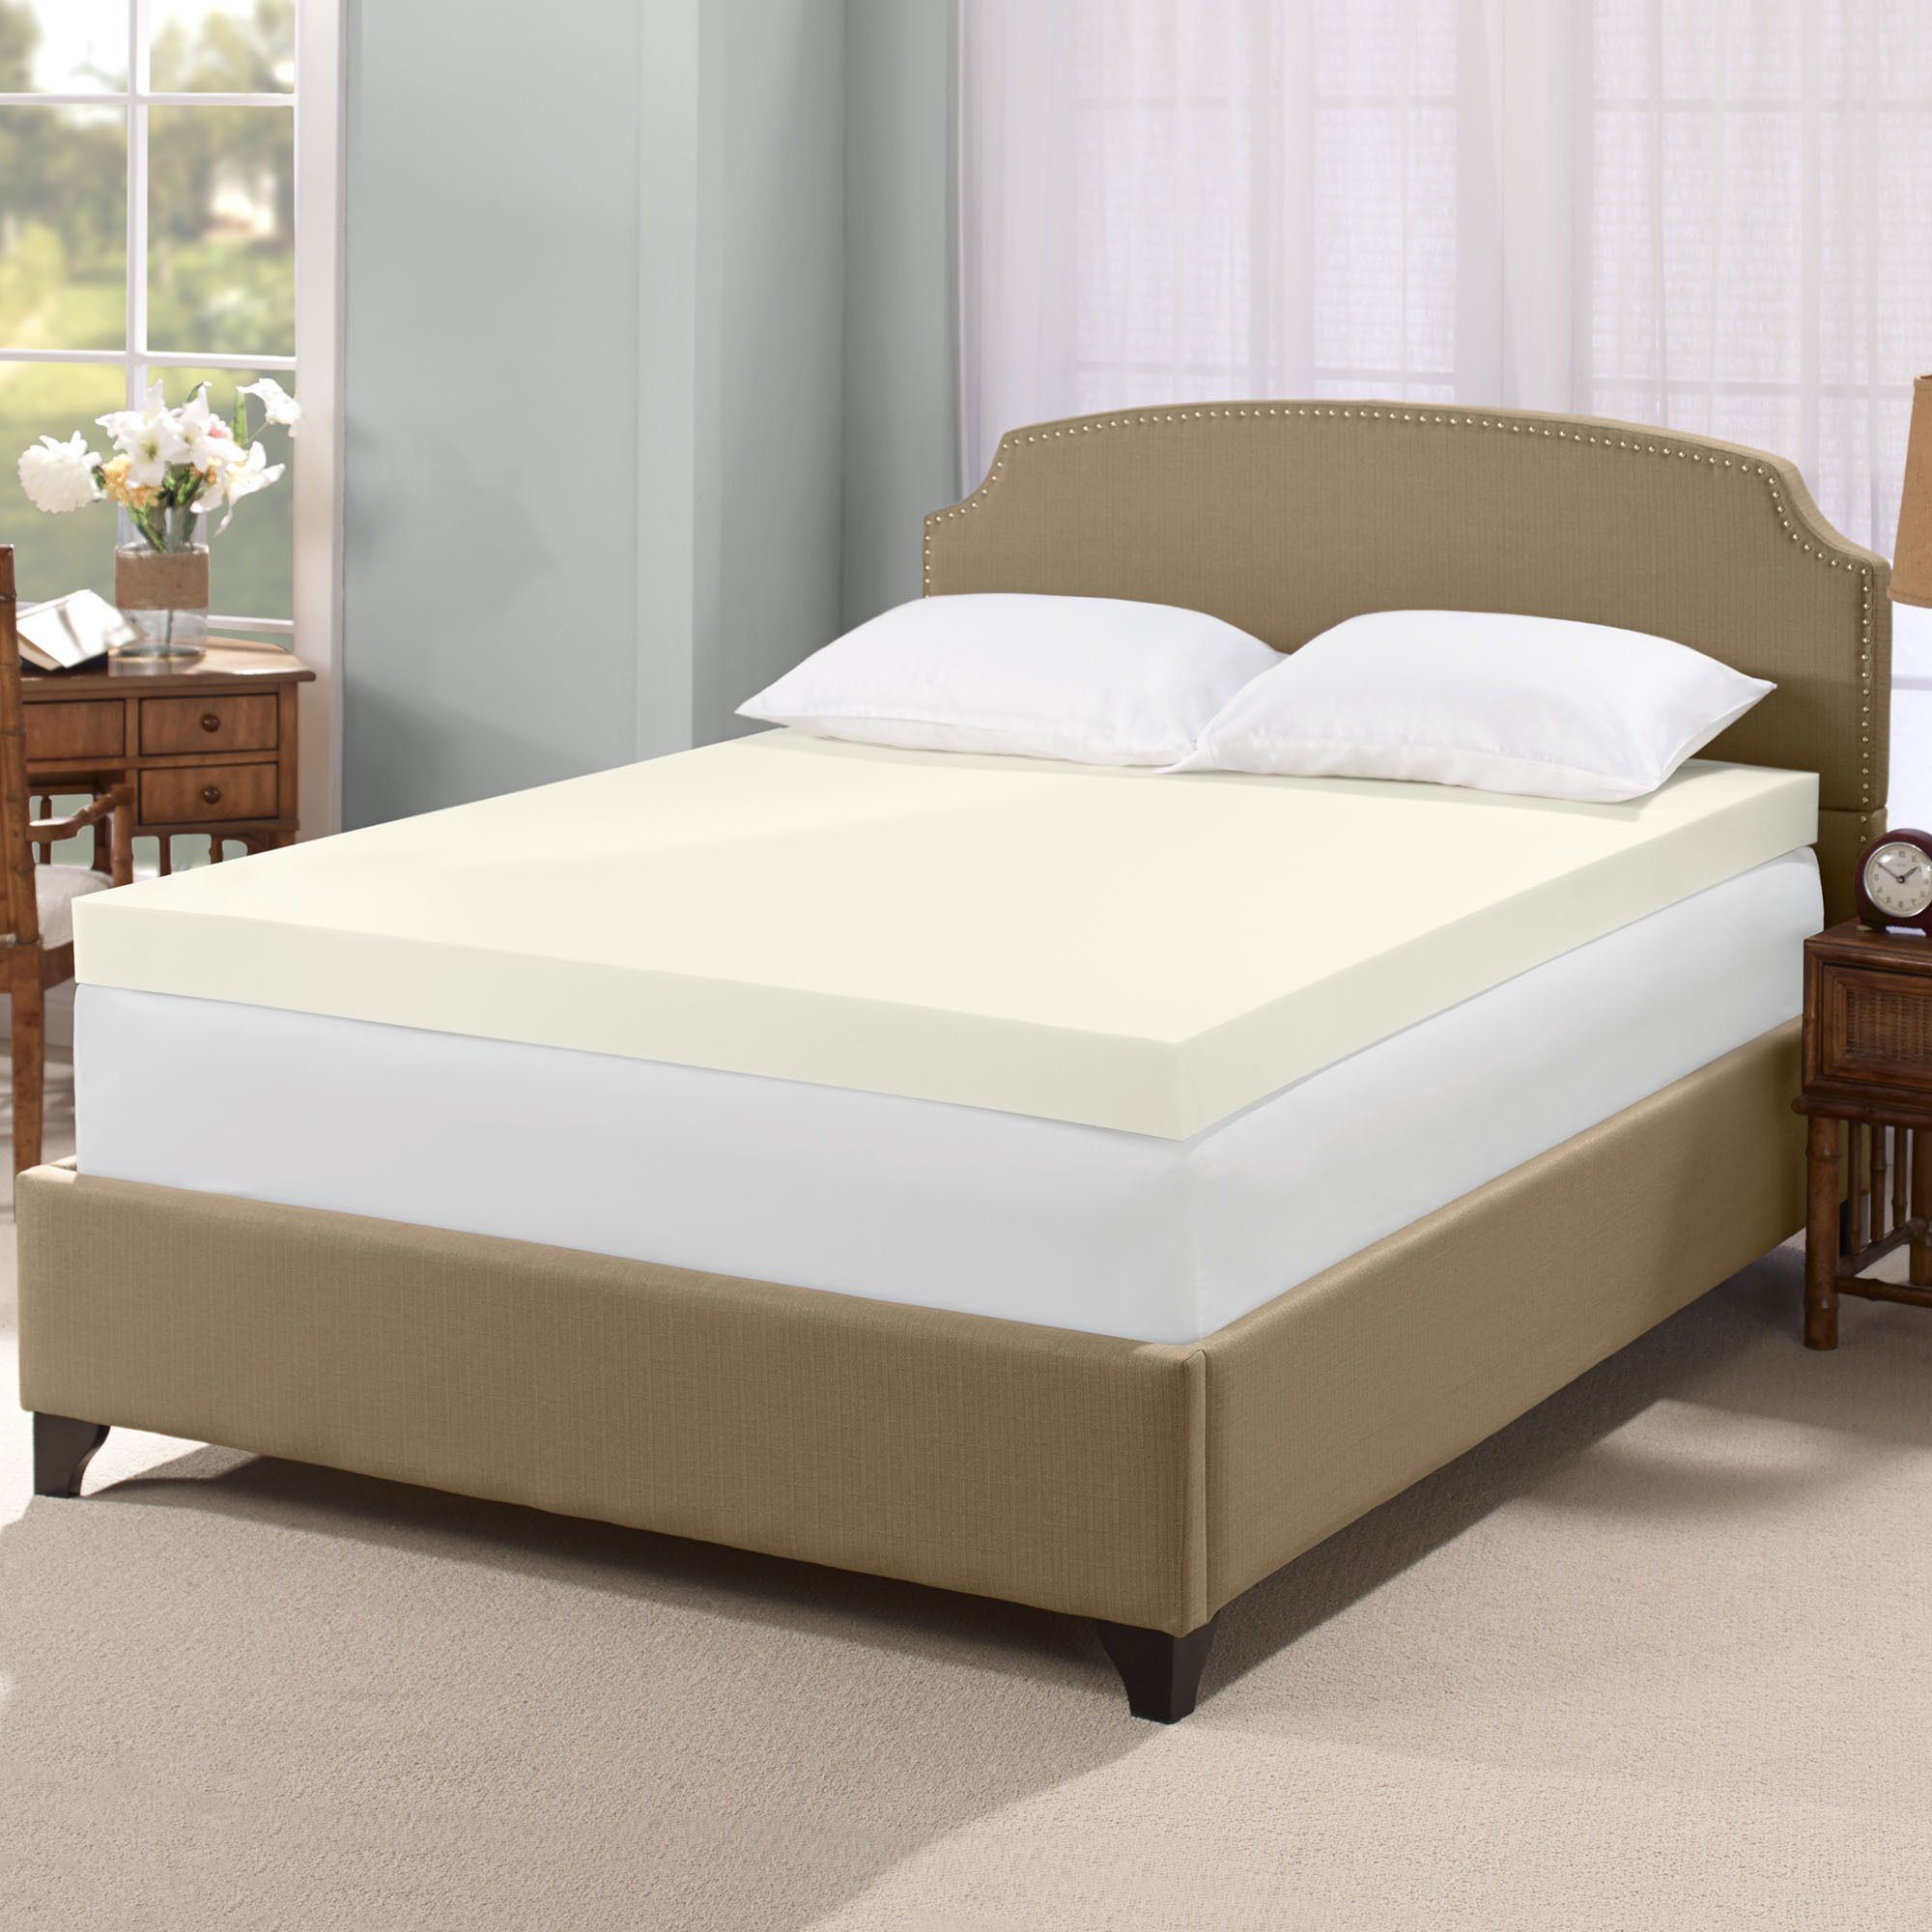 Enjoy A Restful Night S Sleep With This Hypoallergenic Antibacterial Memory Foa Memory Foam Mattress Topper Mattress Topper